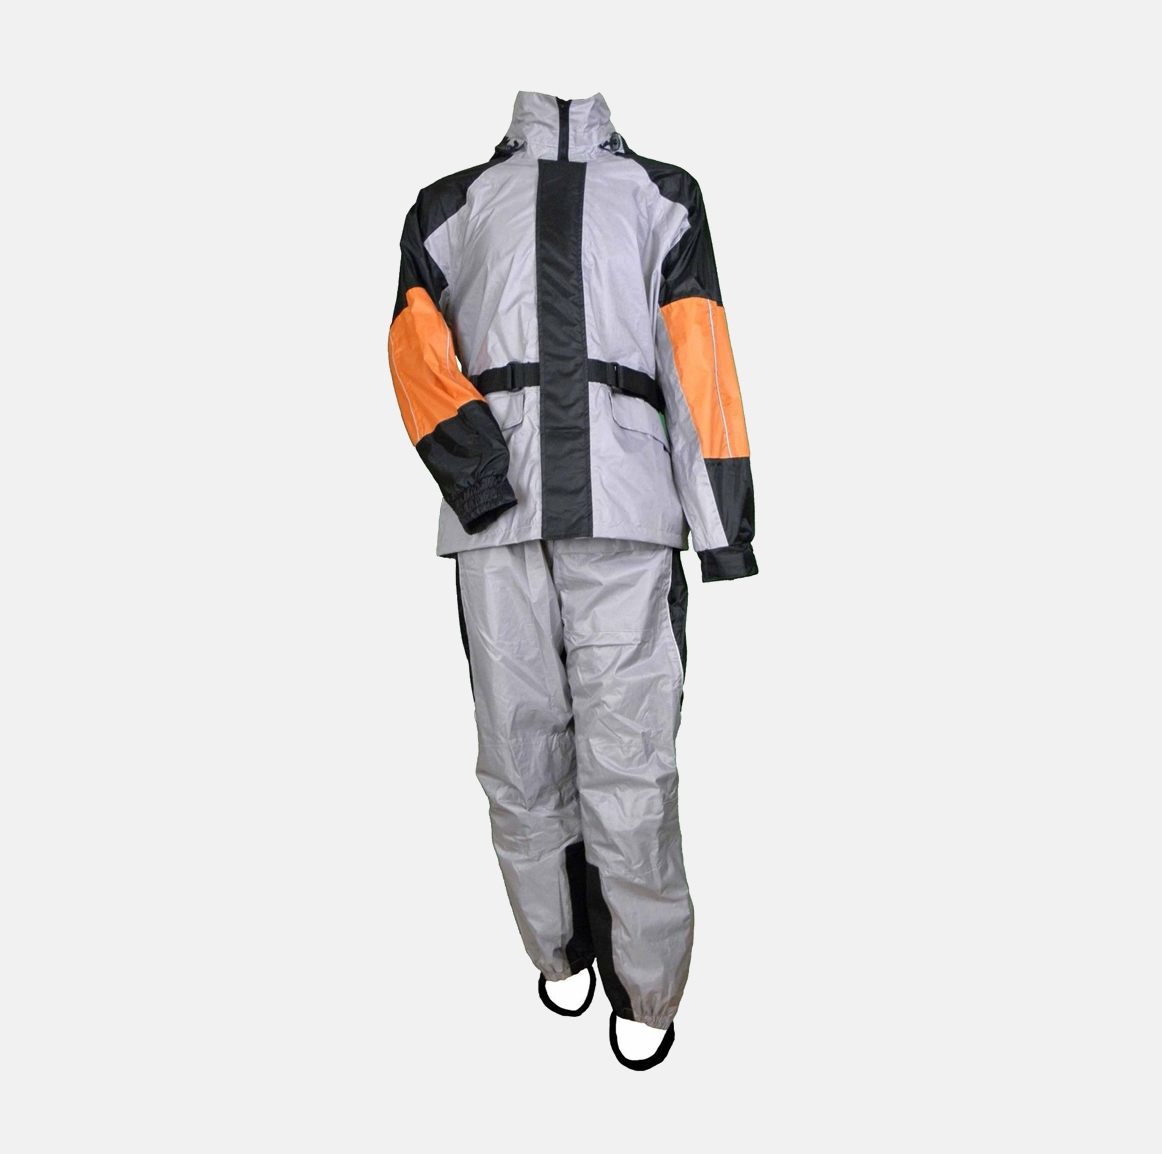 MEN'S MOTORCYCLE RAIN SUIT REFLECTIVE PIPING BLK/ GREY ...